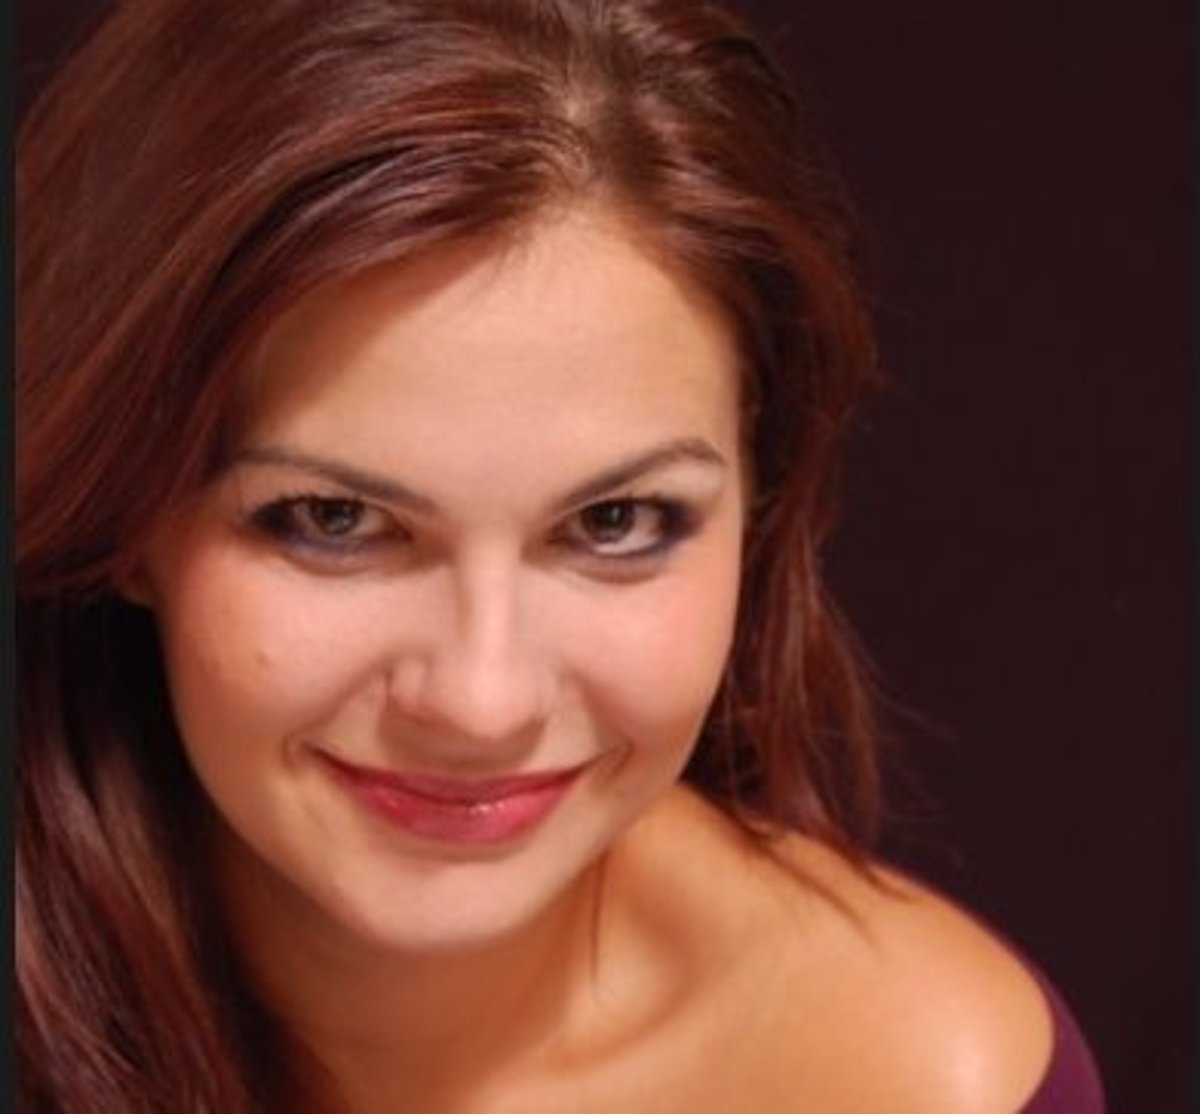 Slovak concert in Brussels includes Dutch, Maltese performers